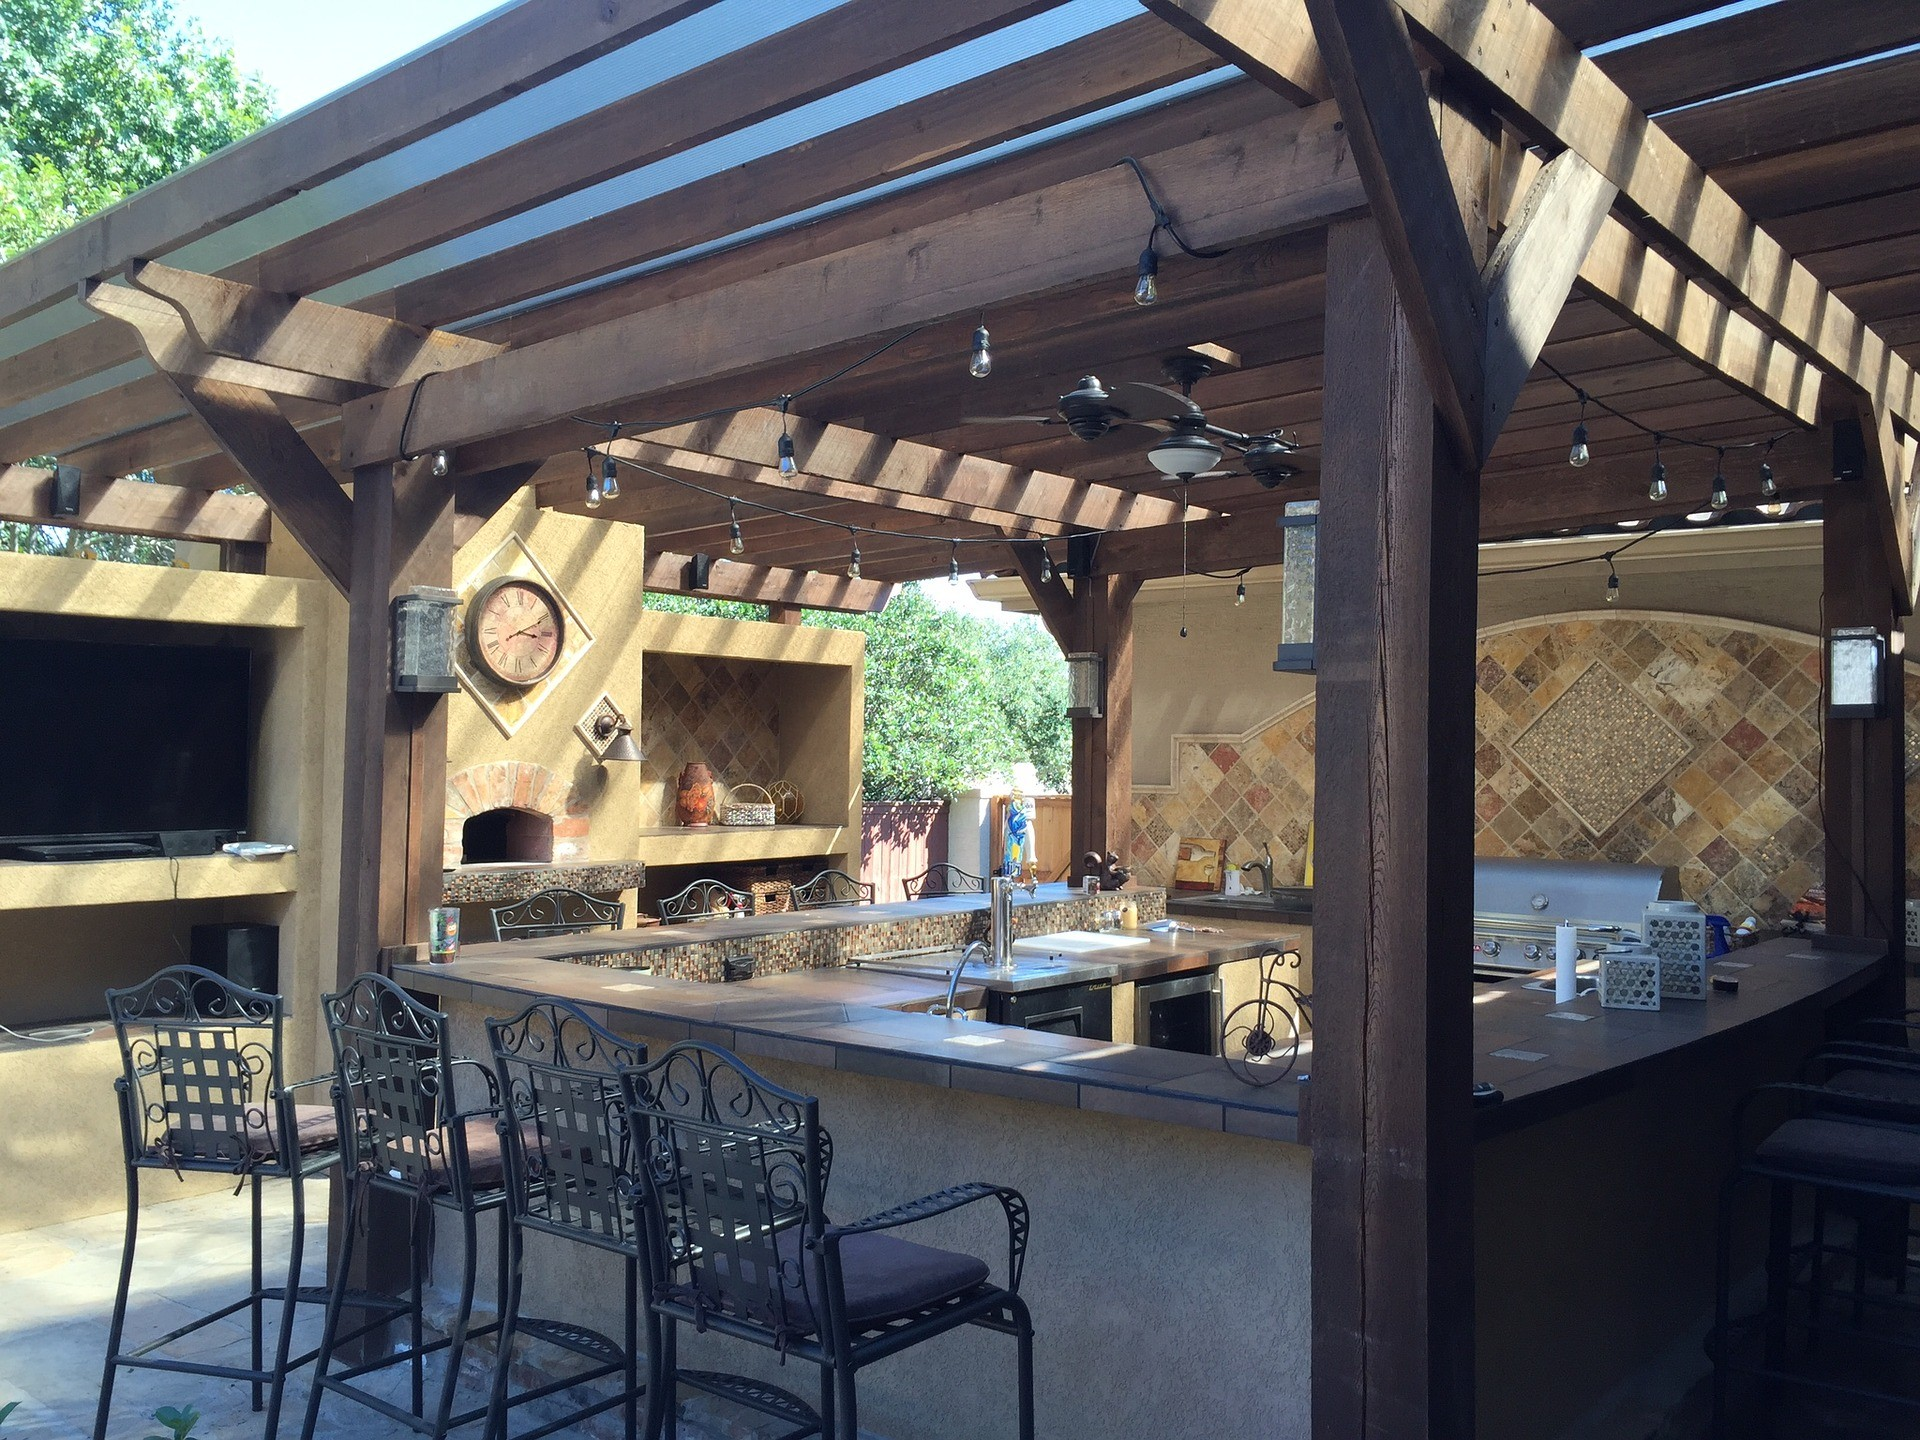 Tampa Custom Kitchen Remodeling Pros - countertops, bathrooms, renovations, custom cabinets, flooring-75-We do great kitchen & bath remodeling, home renovations, custom lighting, custom cabinet installation, cabinet refacing and refinishing, outdoor kitchens, commercial kitchen, countertops and more